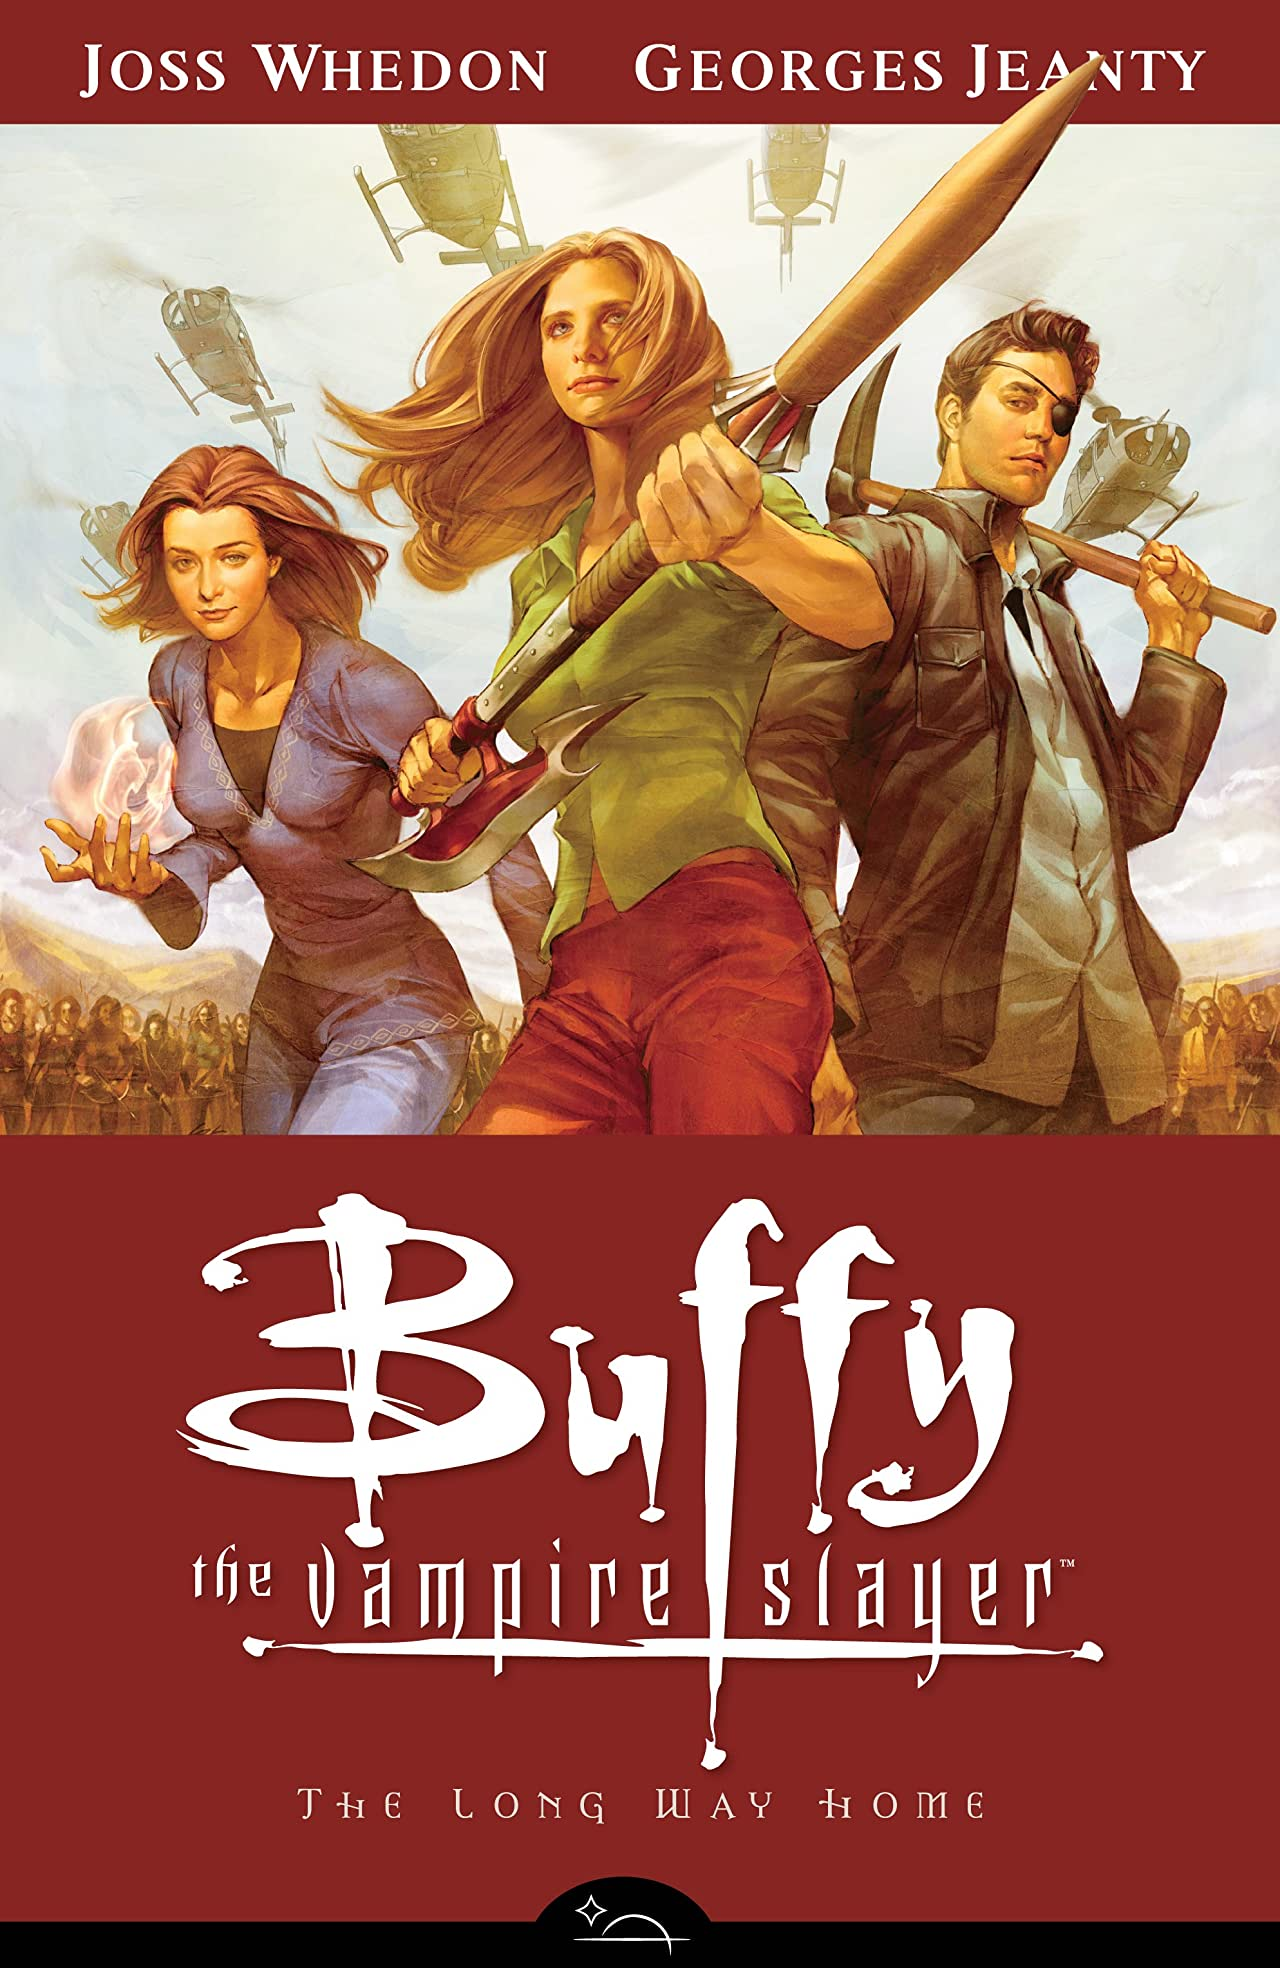 Buffy the Vampire Slayer Season 8 Vol. 1: The Long Way Home